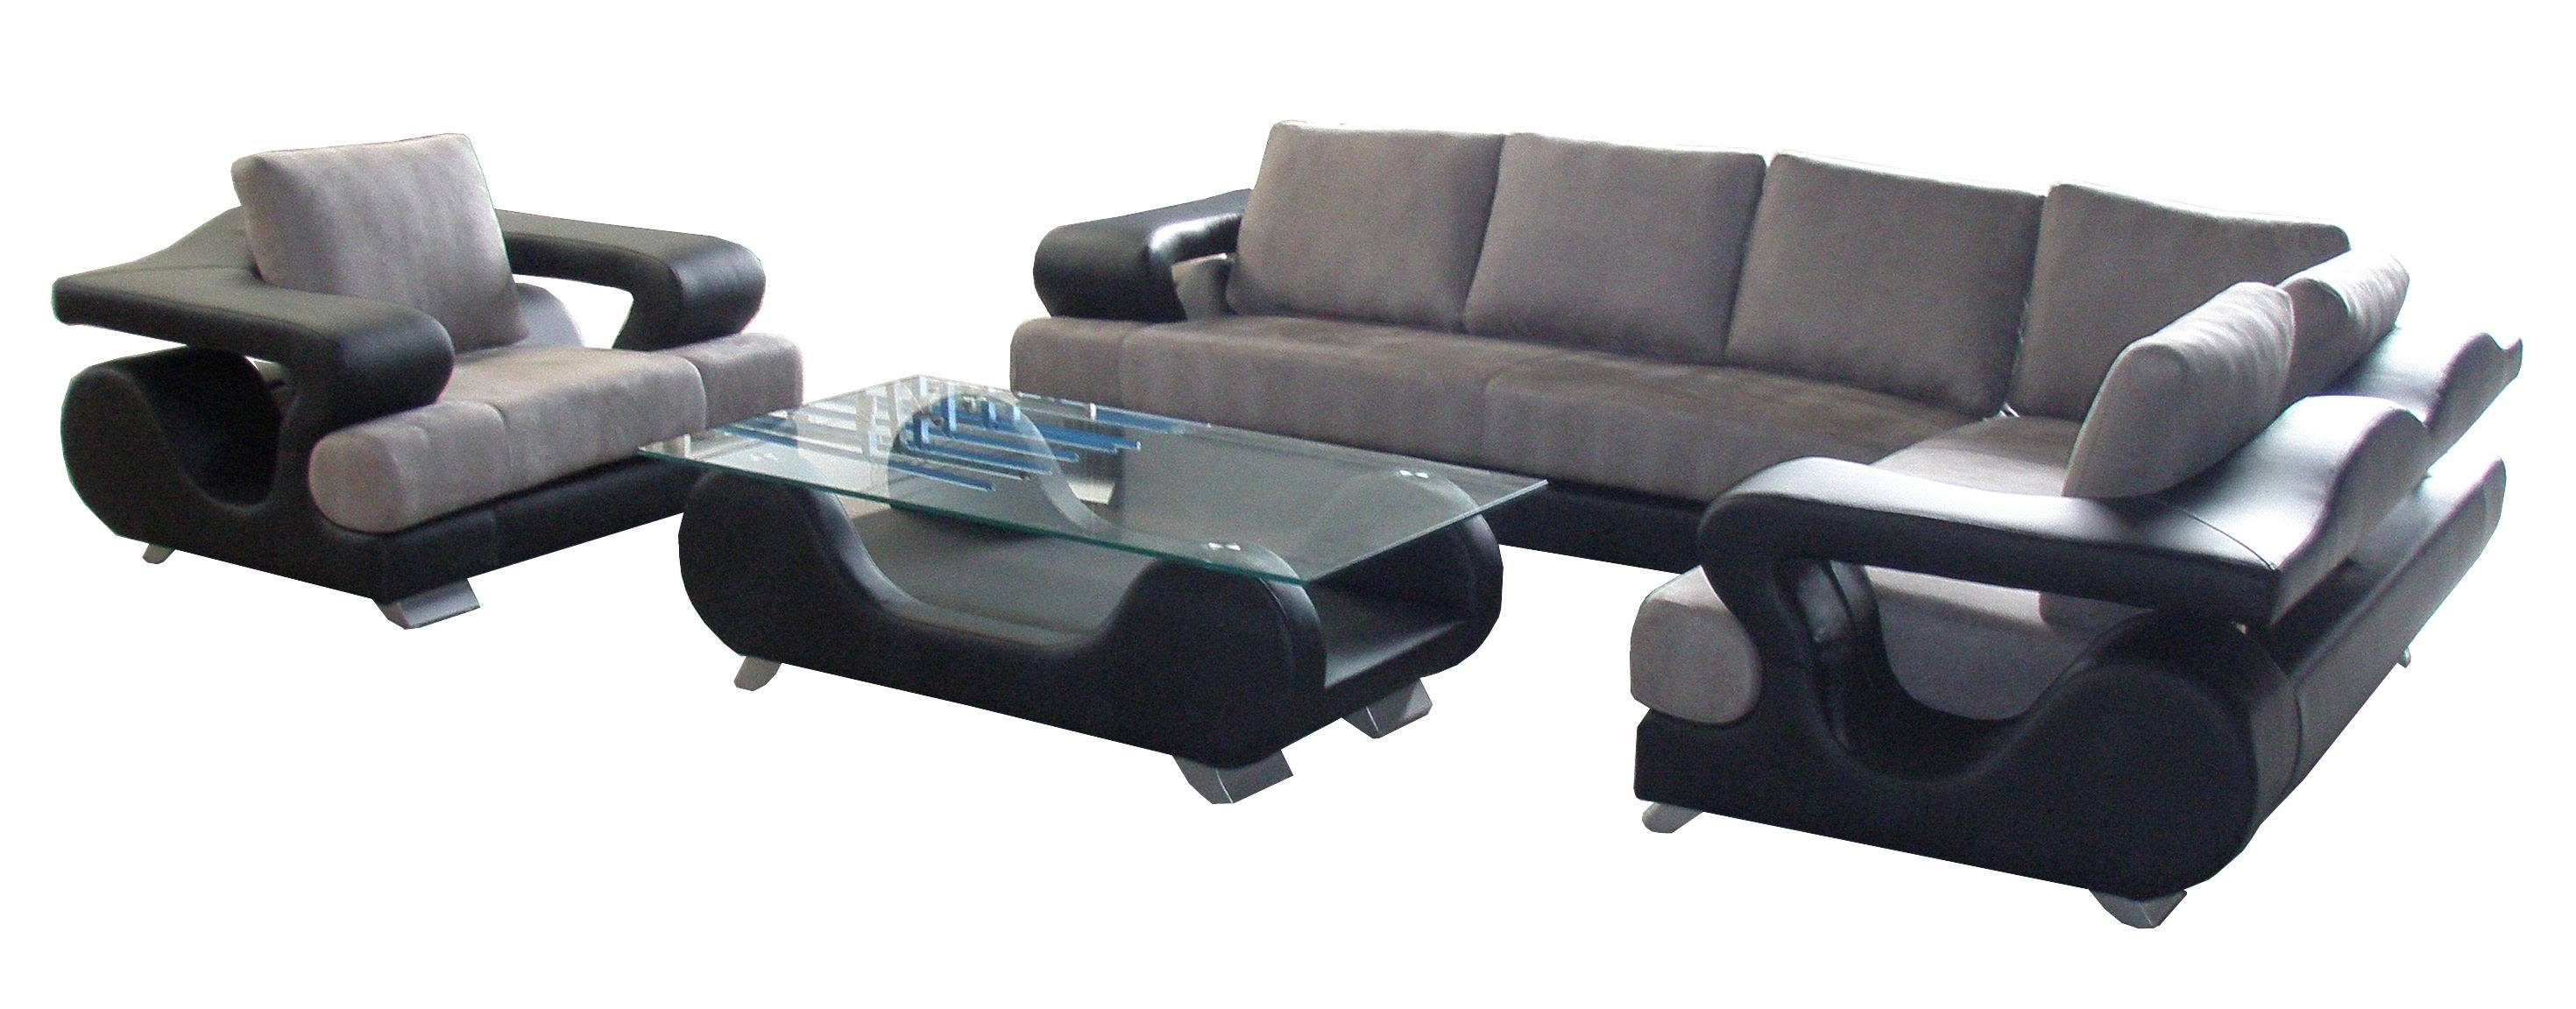 Superbe Modern Pieces Of Furniture Comes In Various Forms Like Home Lounge Pieces  Of Furniture, Chairs, Kitchen Table, Workdesk, ...